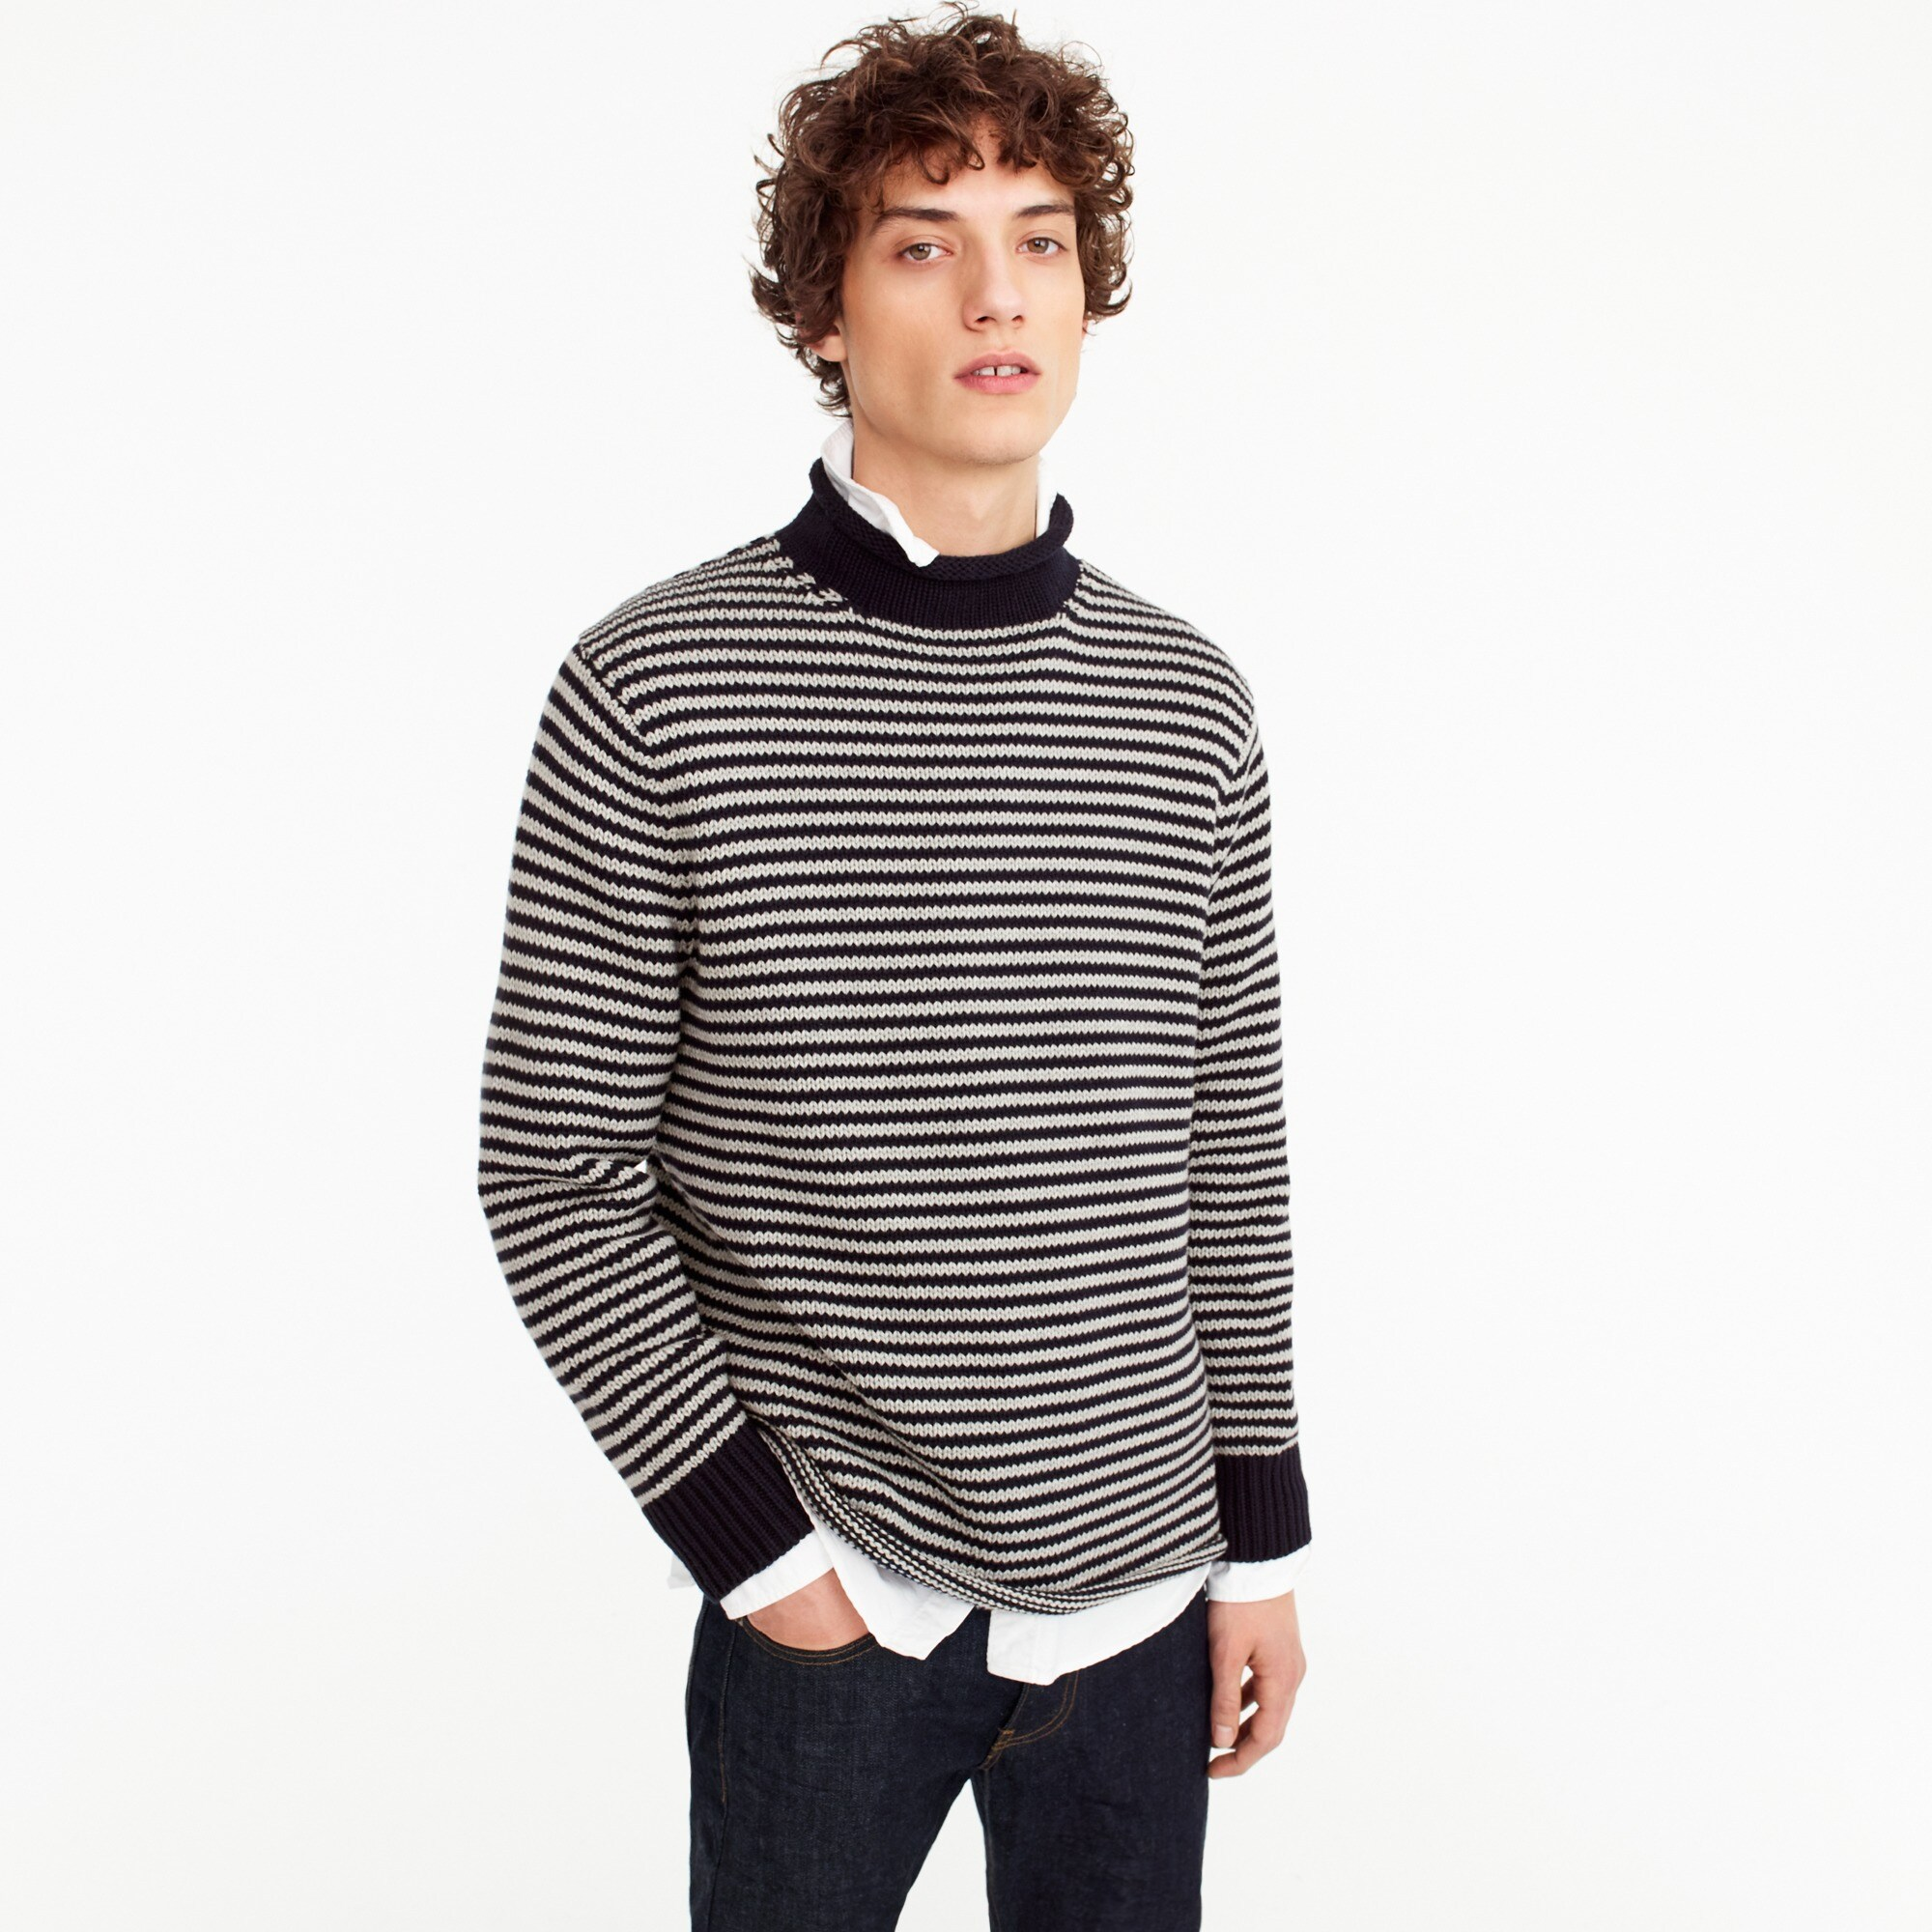 Unisex 1988 cotton rollneck™ sweater in stripe